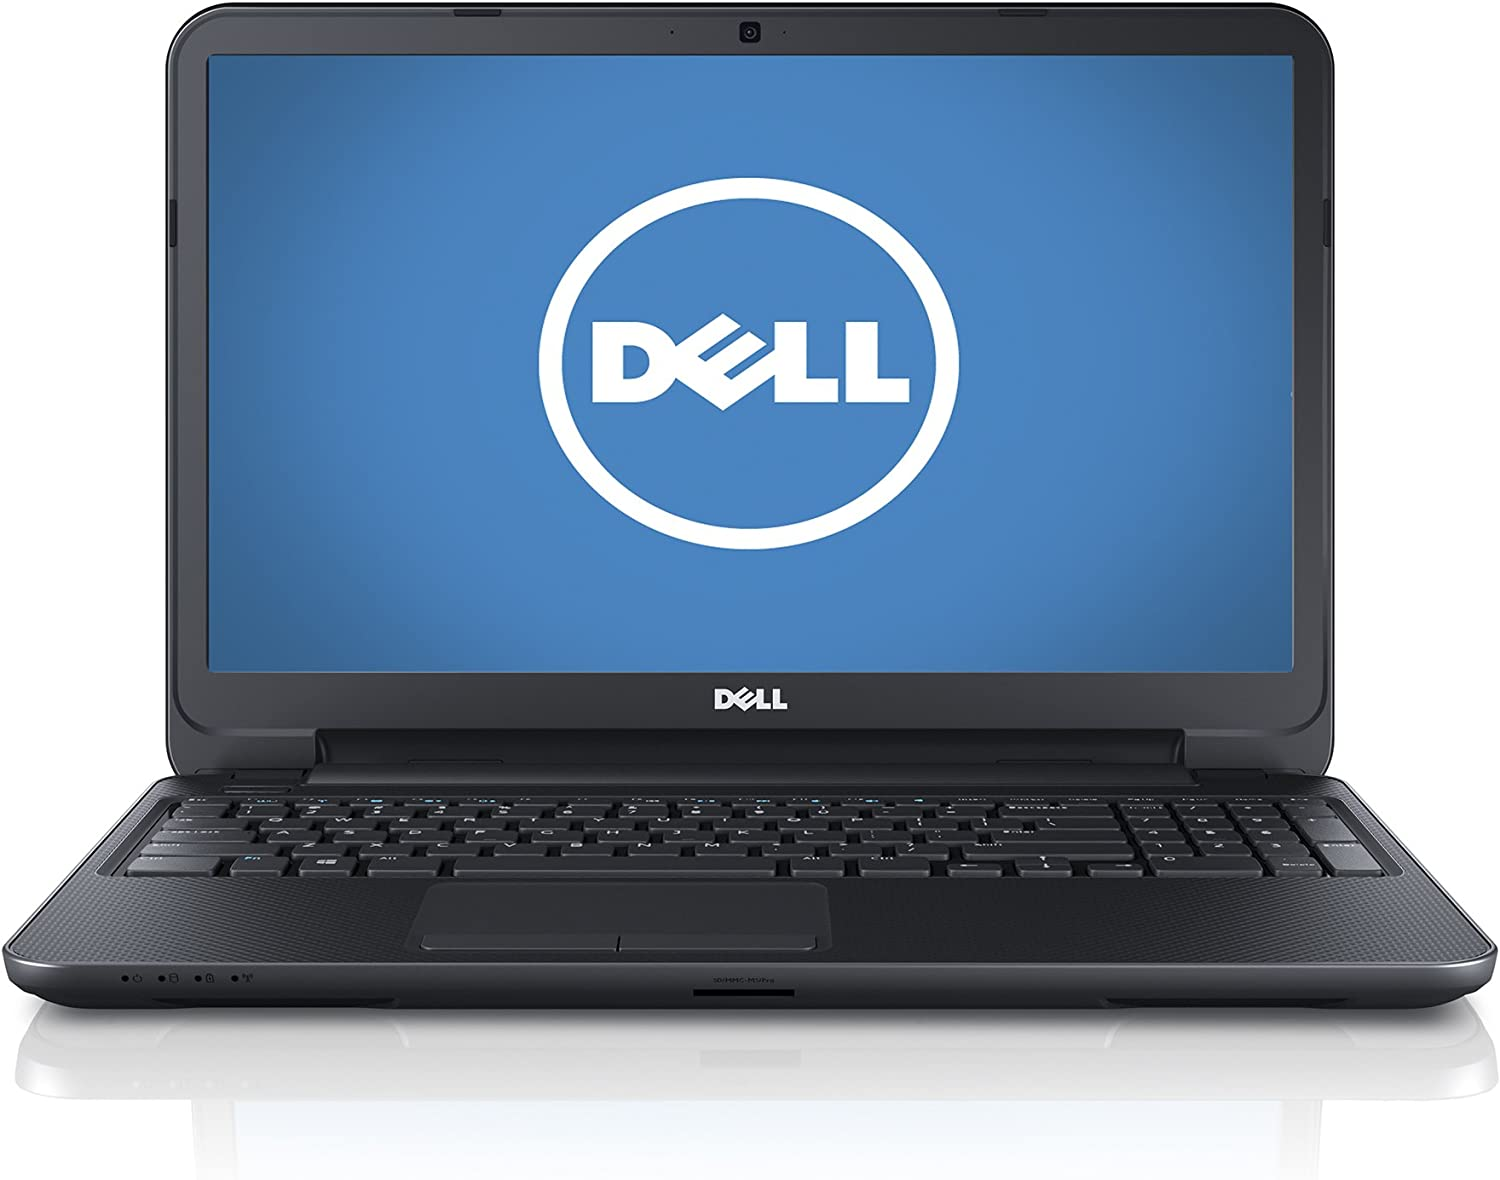 Dell Inspiron 15-3521 Intel Pentium 2127U 4GB RAM 250GB HDD Win 10 Home Webcam